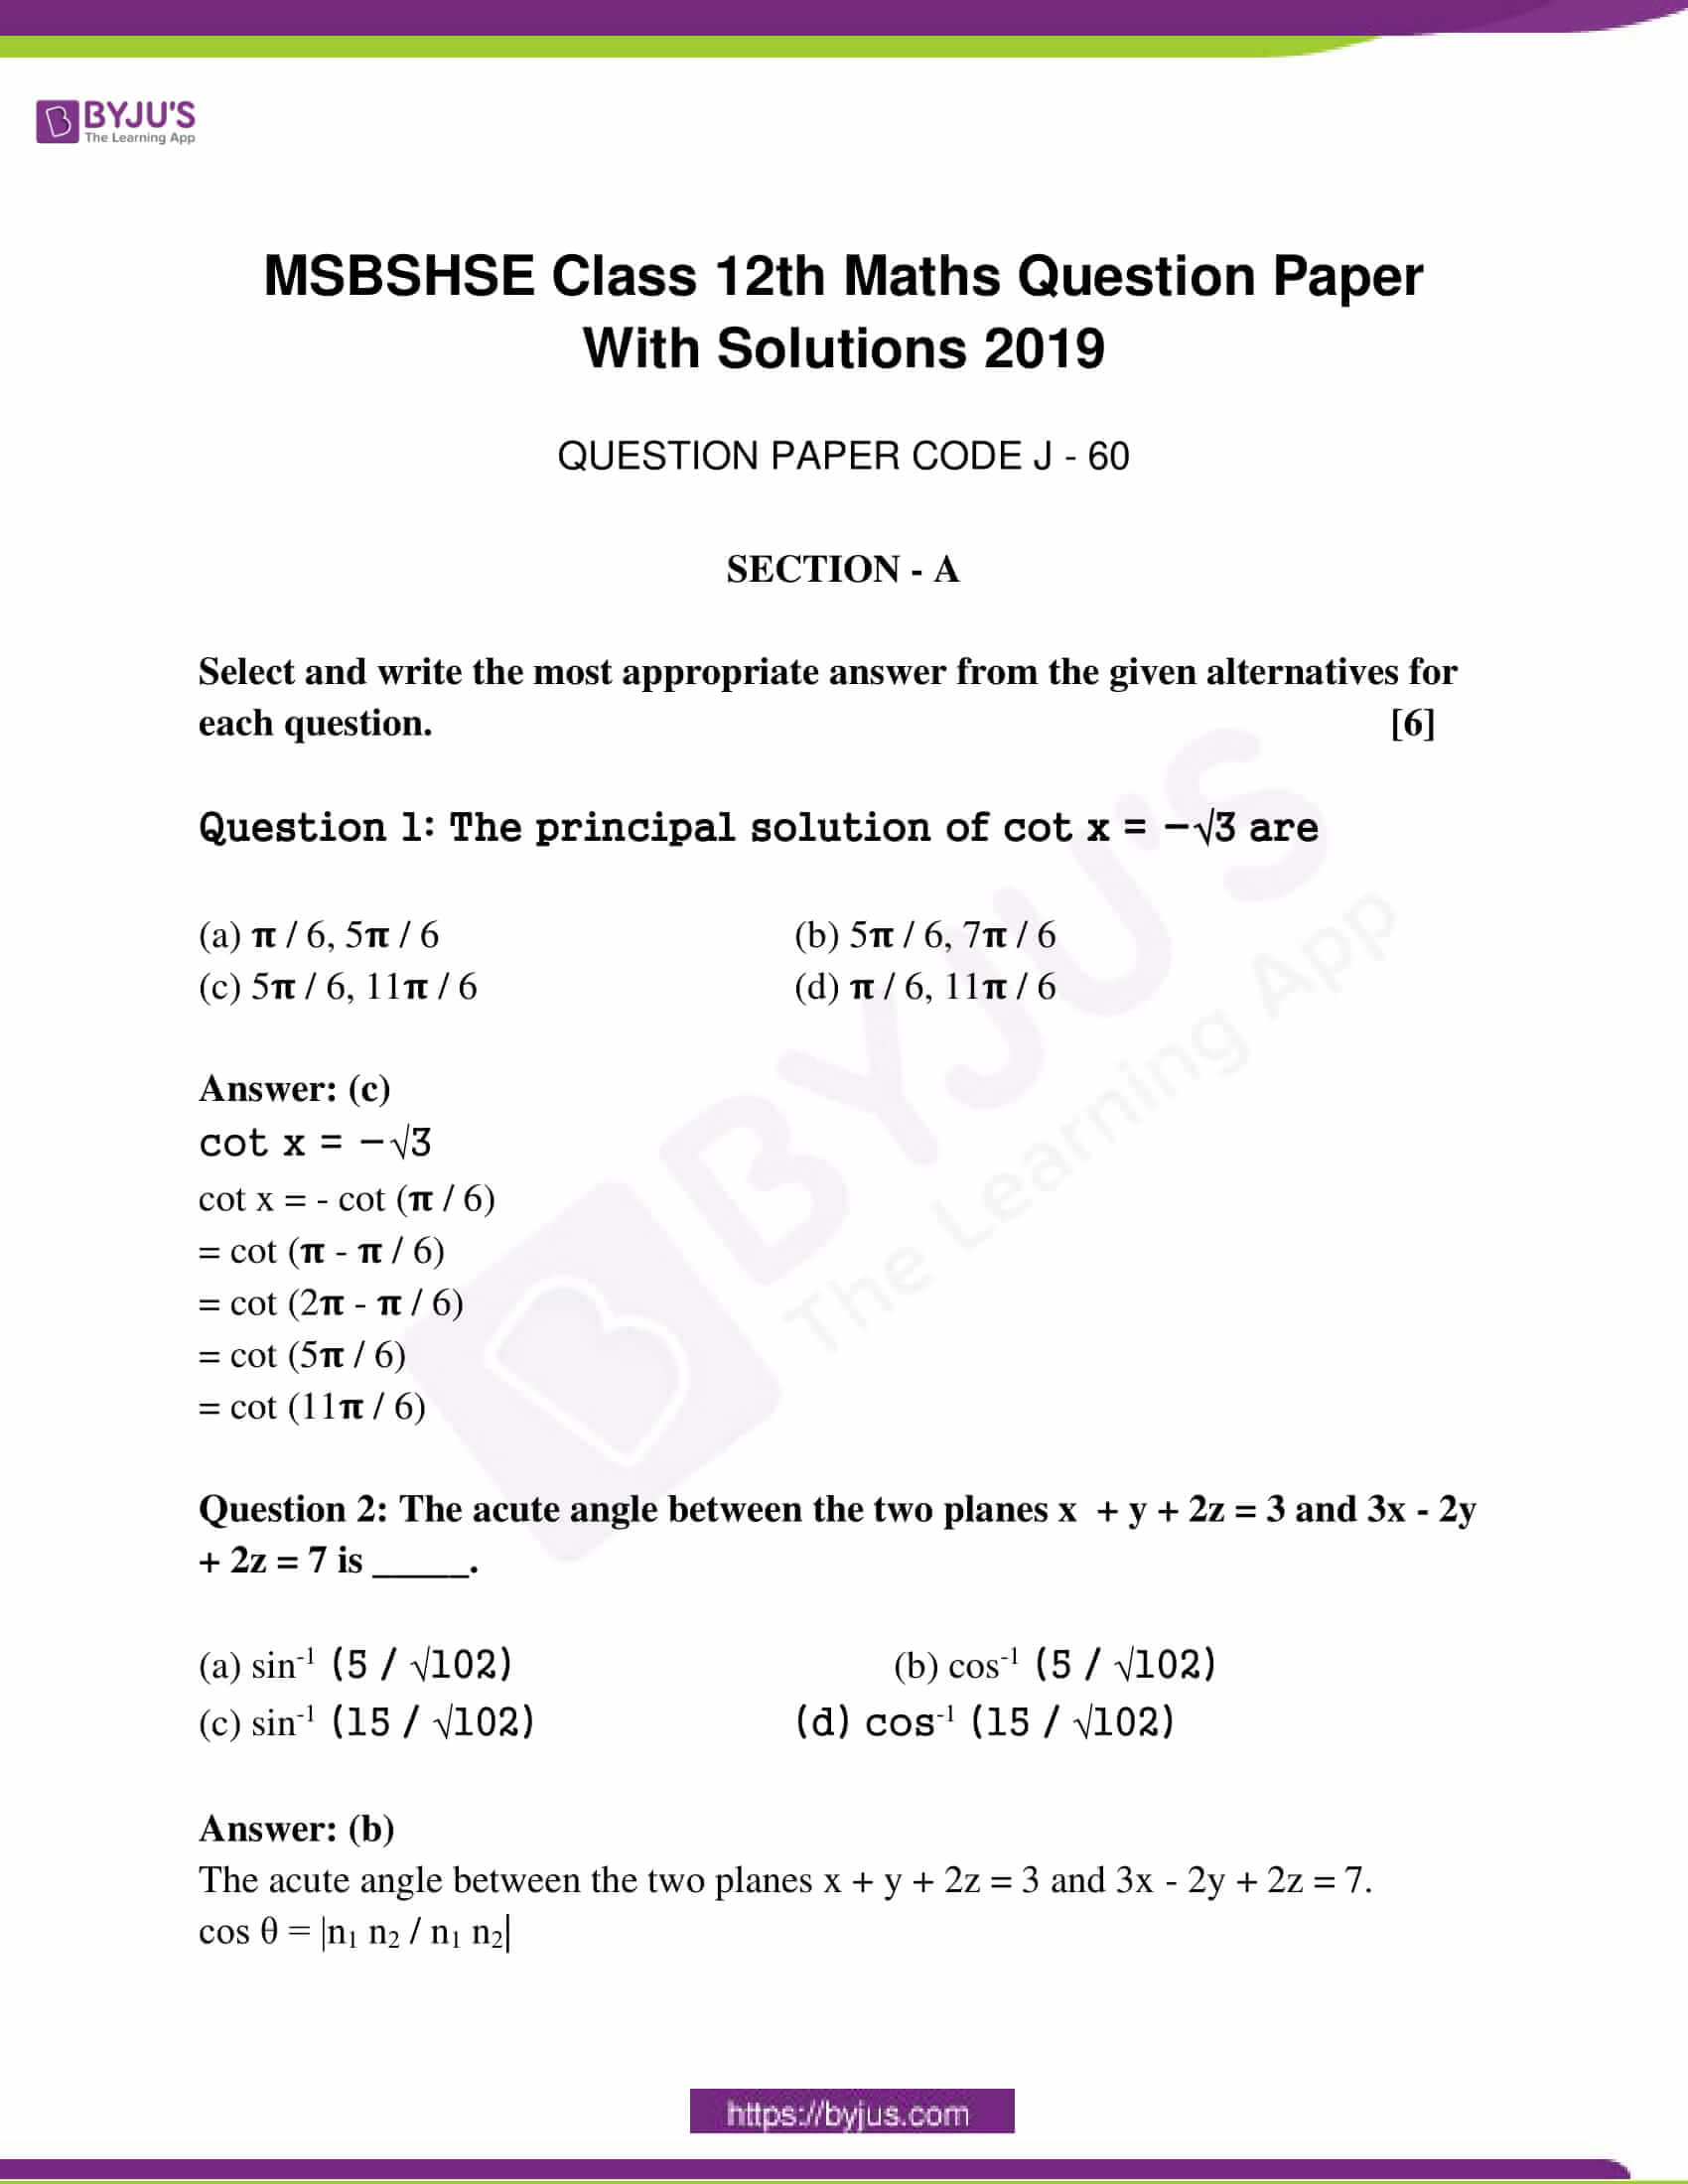 maharashtra class 12 exam question paper sol march 2019 01